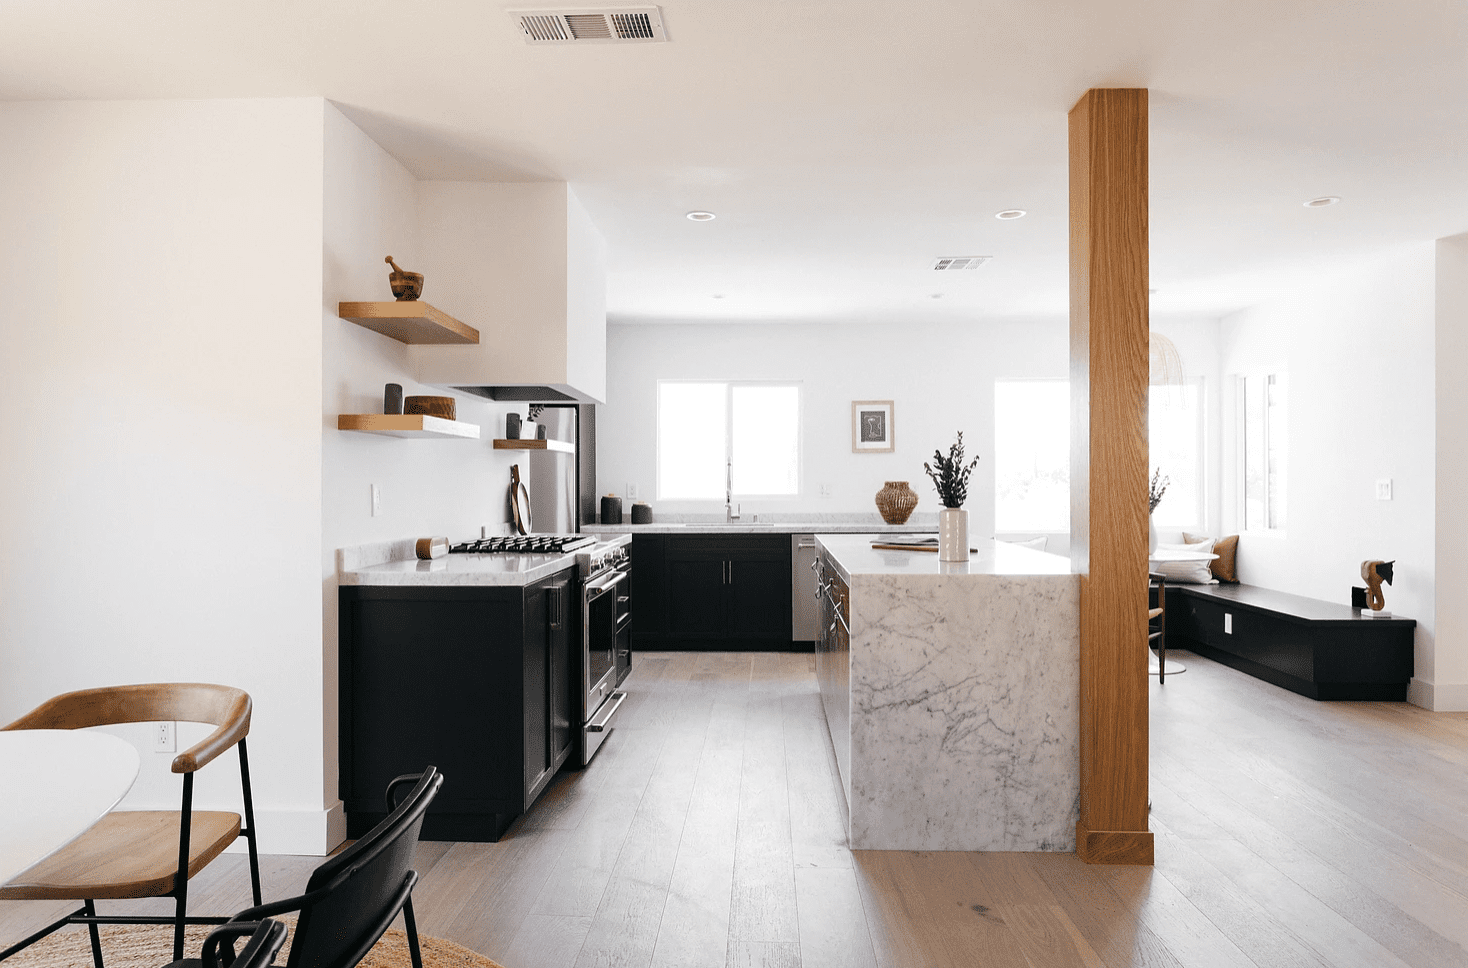 An open-concept kitchen with an exposed wooden column